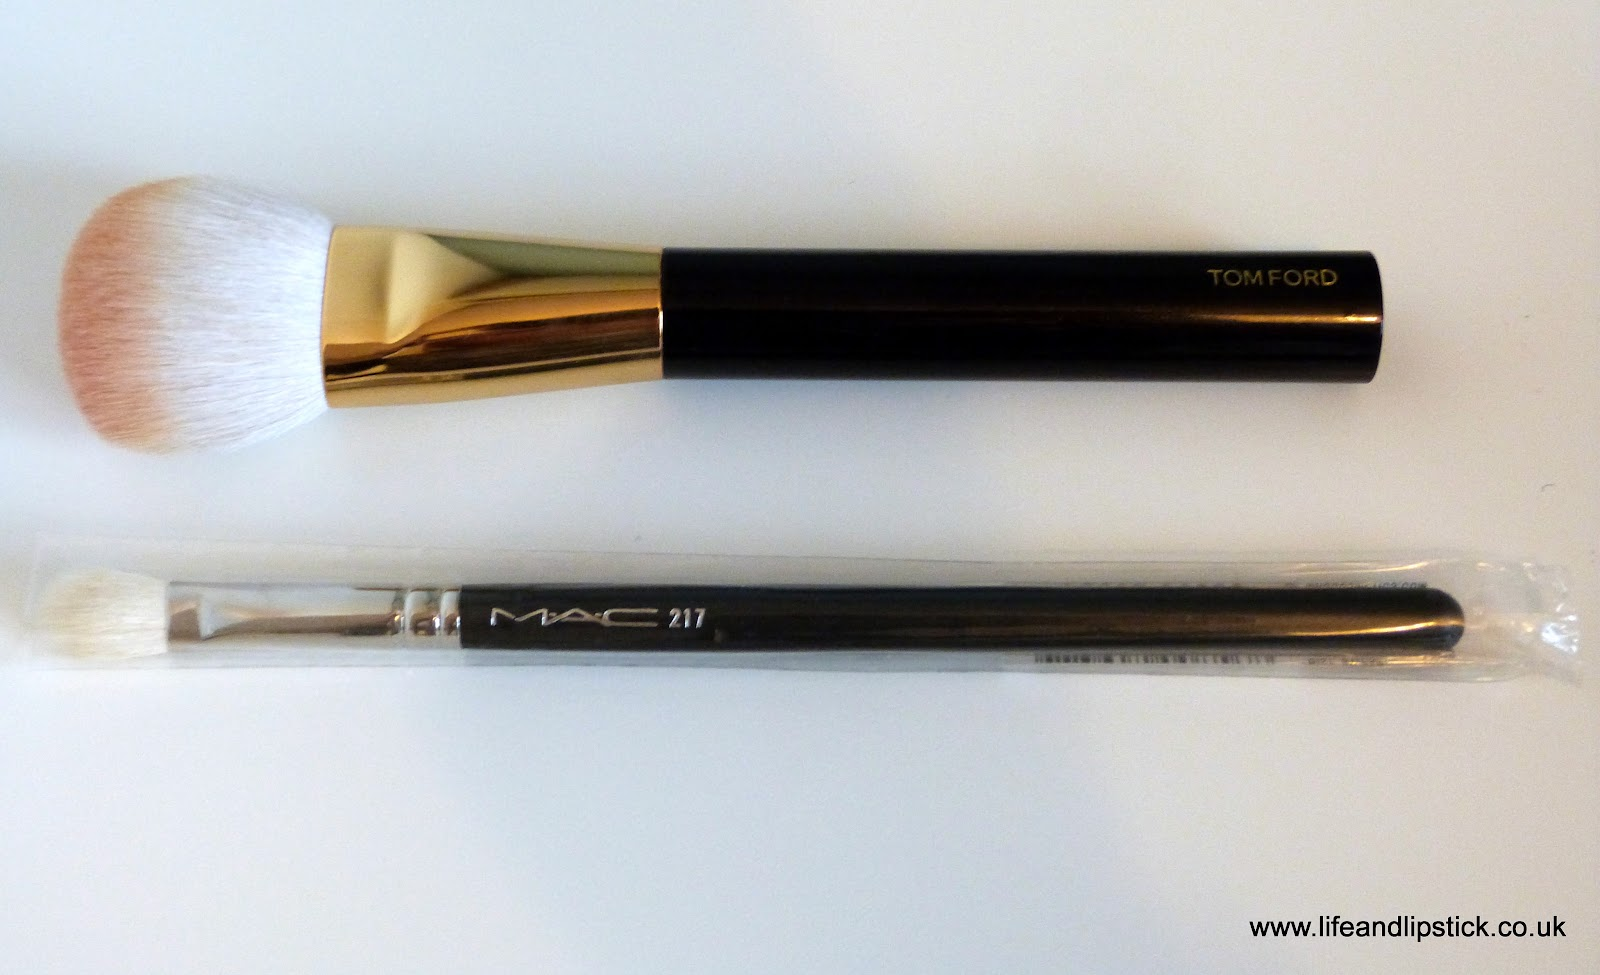 Tom Ford Cheek Brush MAC 217 Collective Beauty Haul